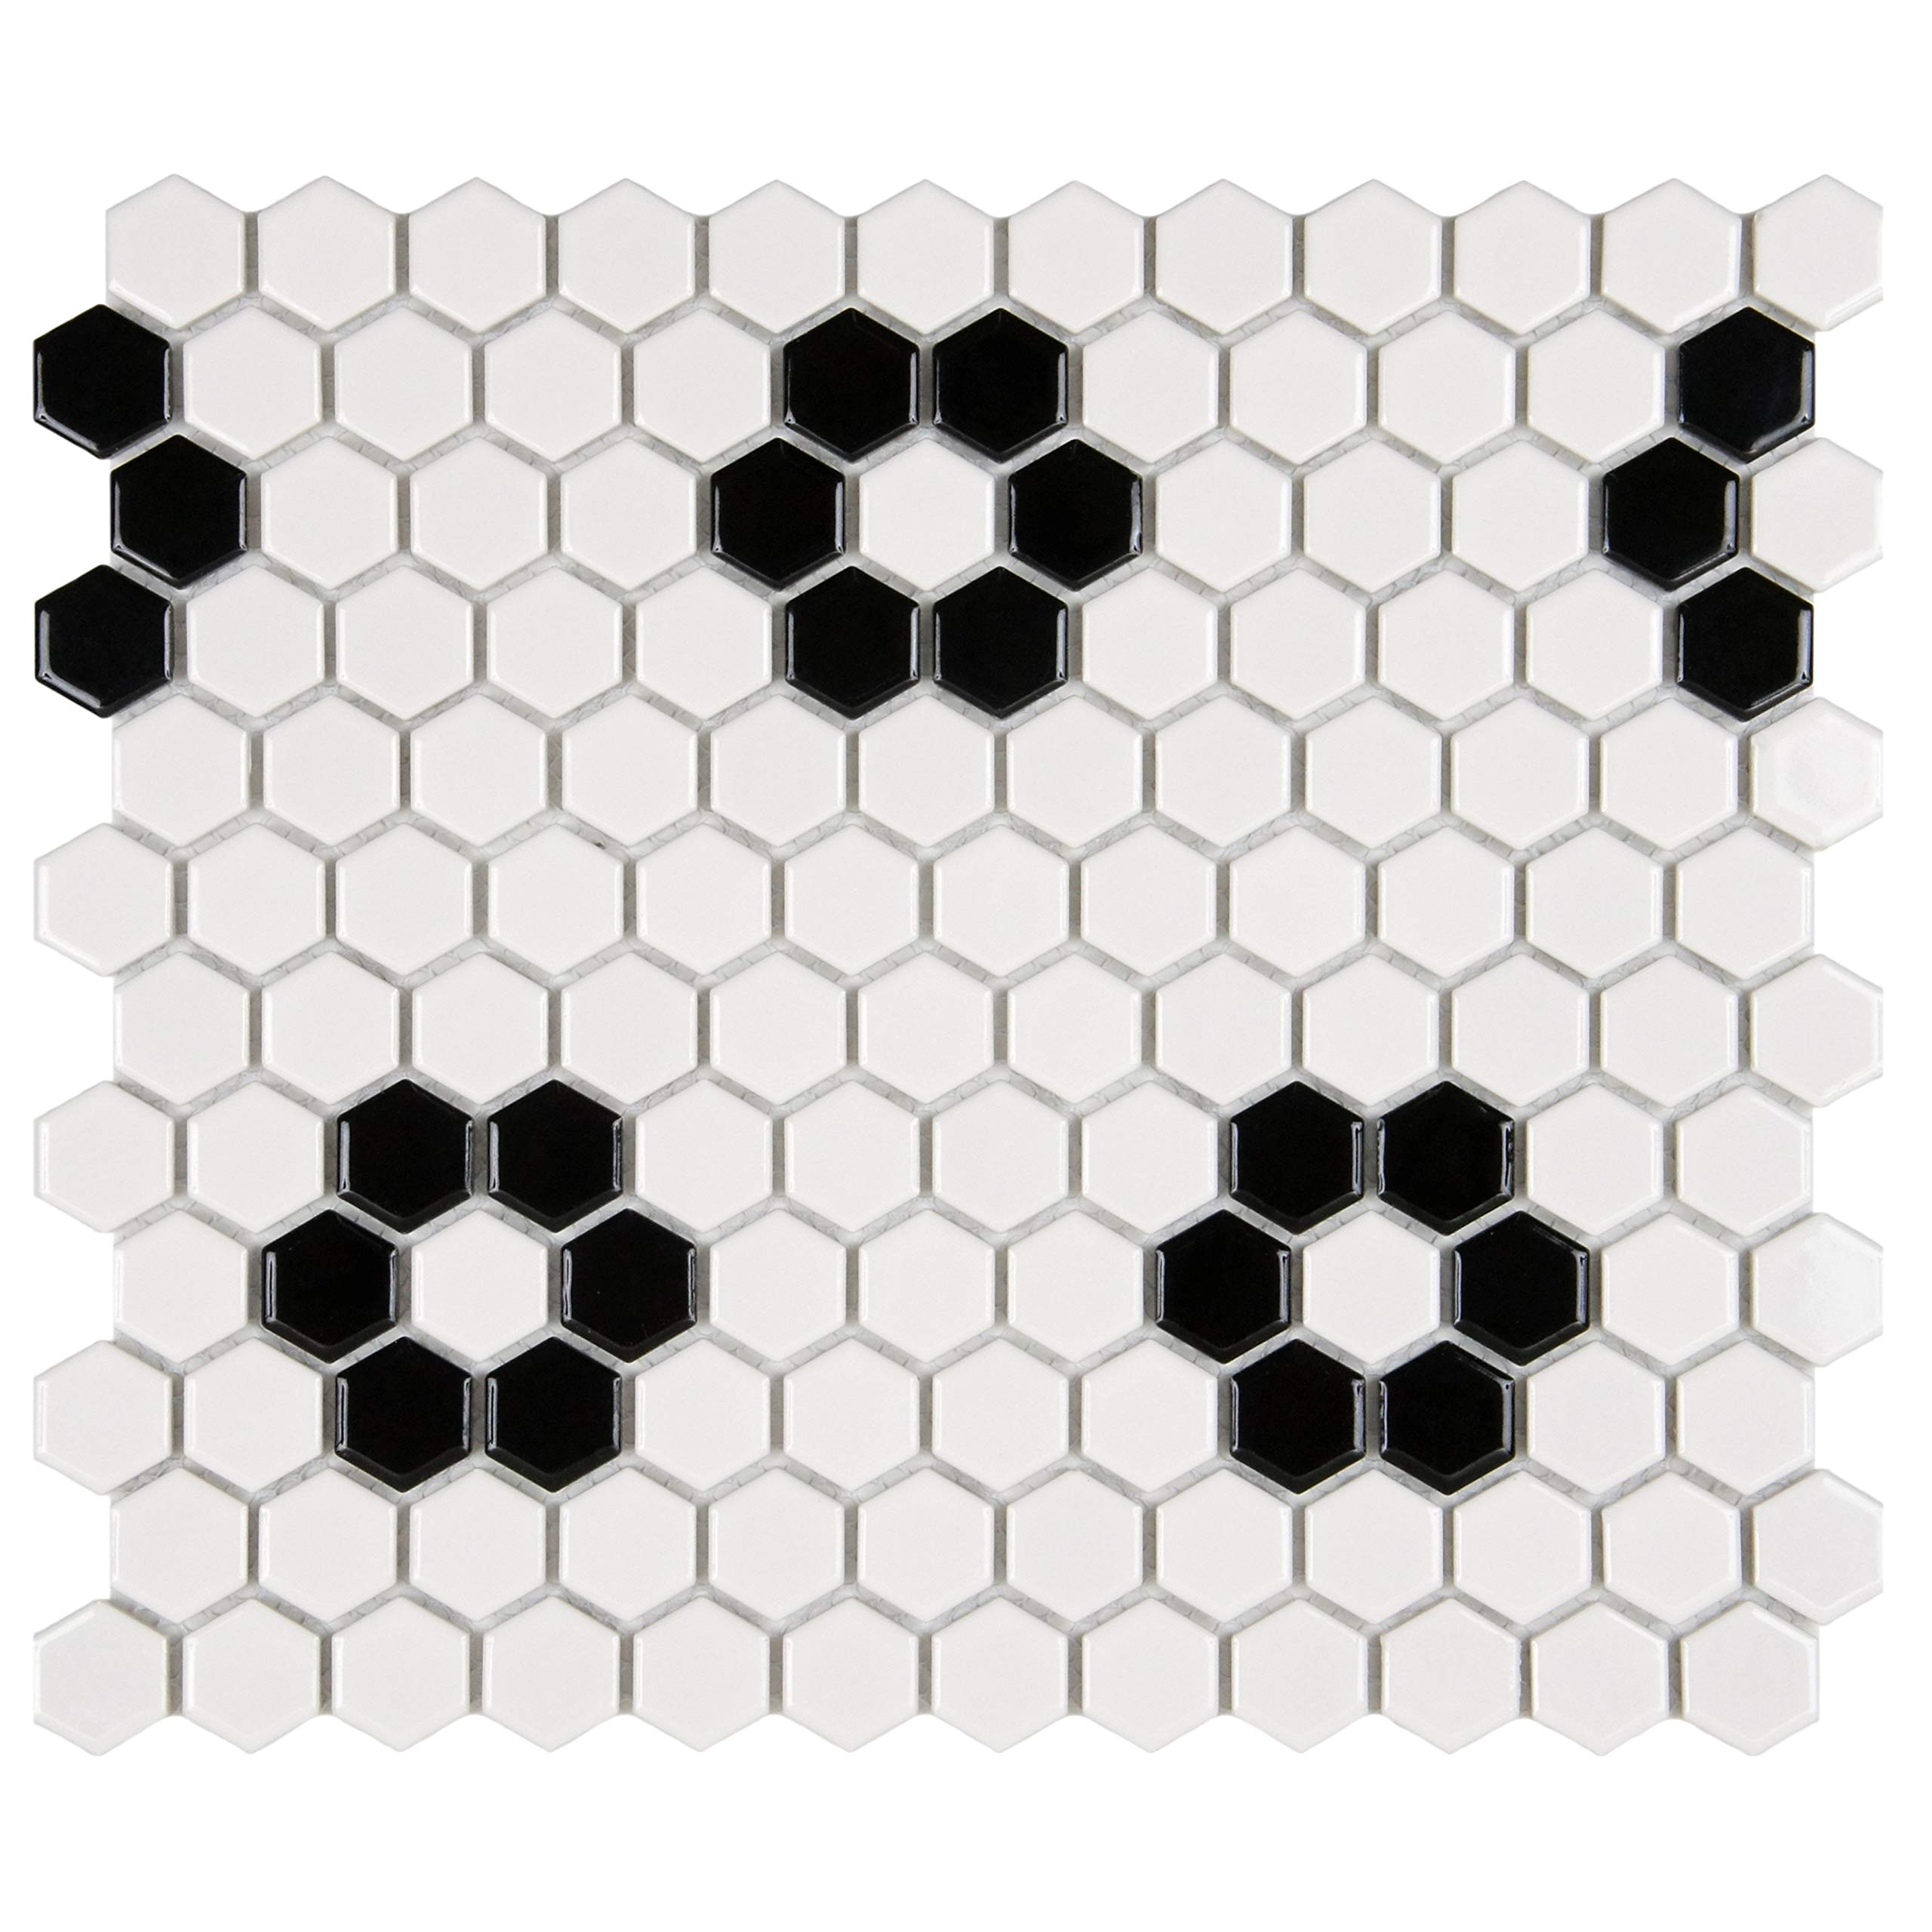 SomerTile FXLM1HGH Retro Hex Heavy Flower Porcelain Floor and Wall Tile, 10.25'' x 11.75'', Glossy White/Black